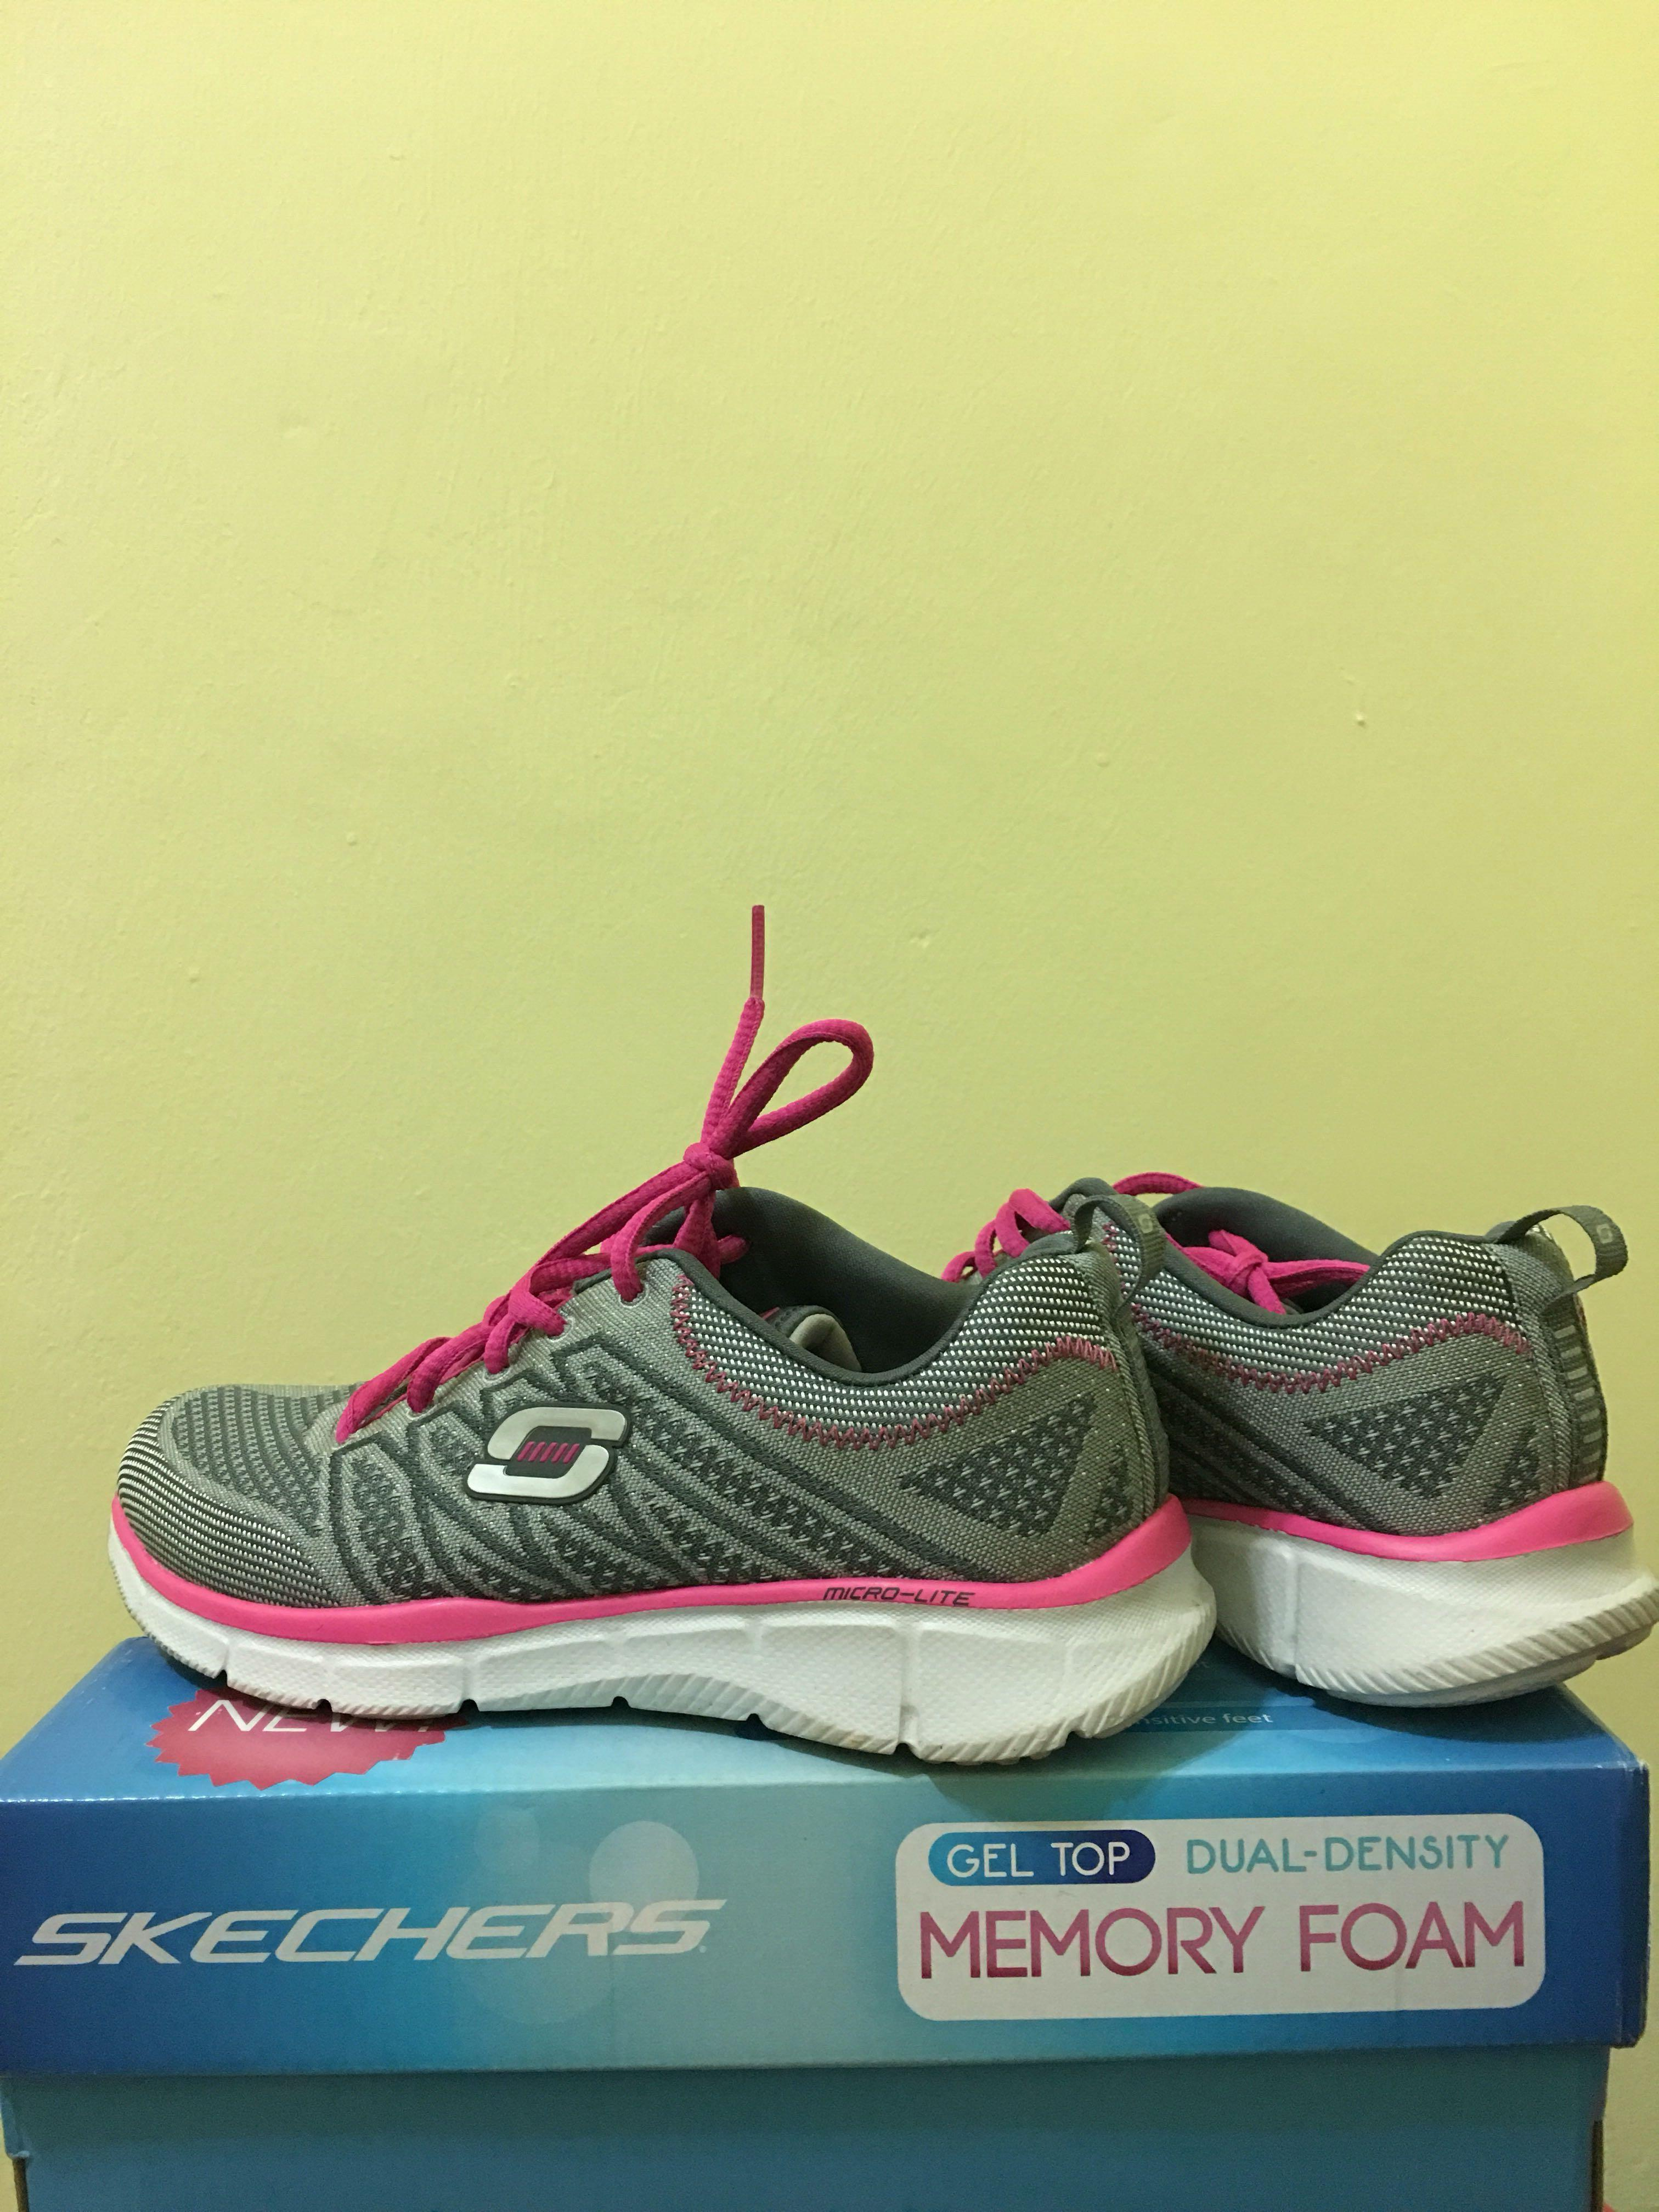 skechers gel top memory foam